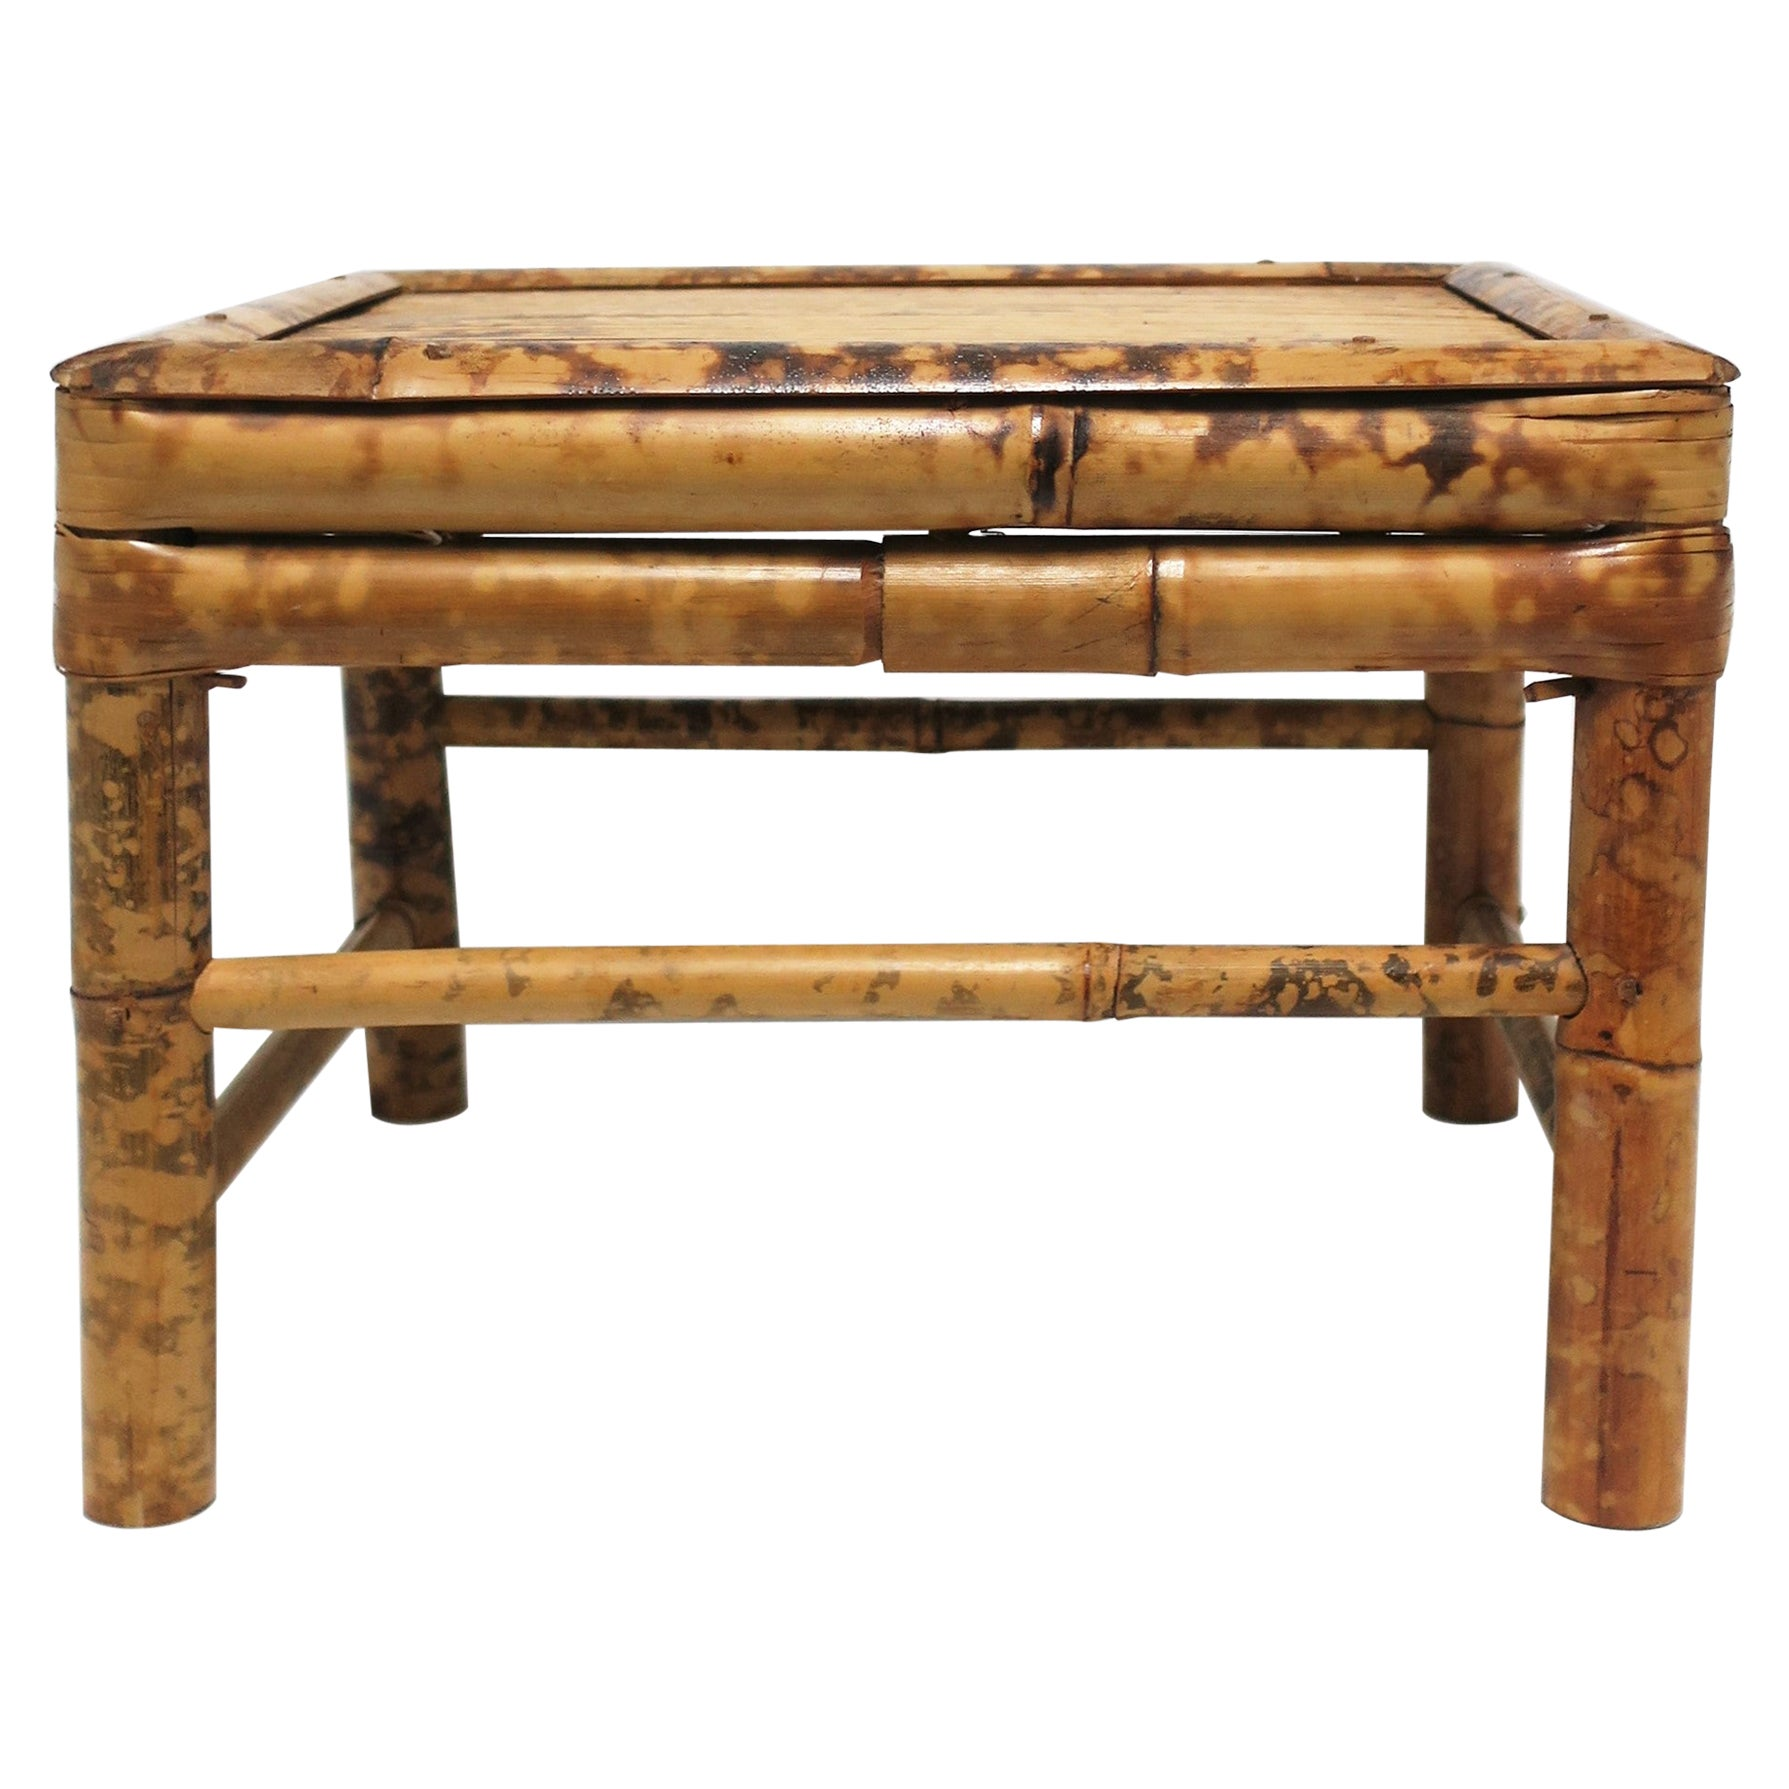 Bamboo Pedestal Side Table or Plant Stand, Small